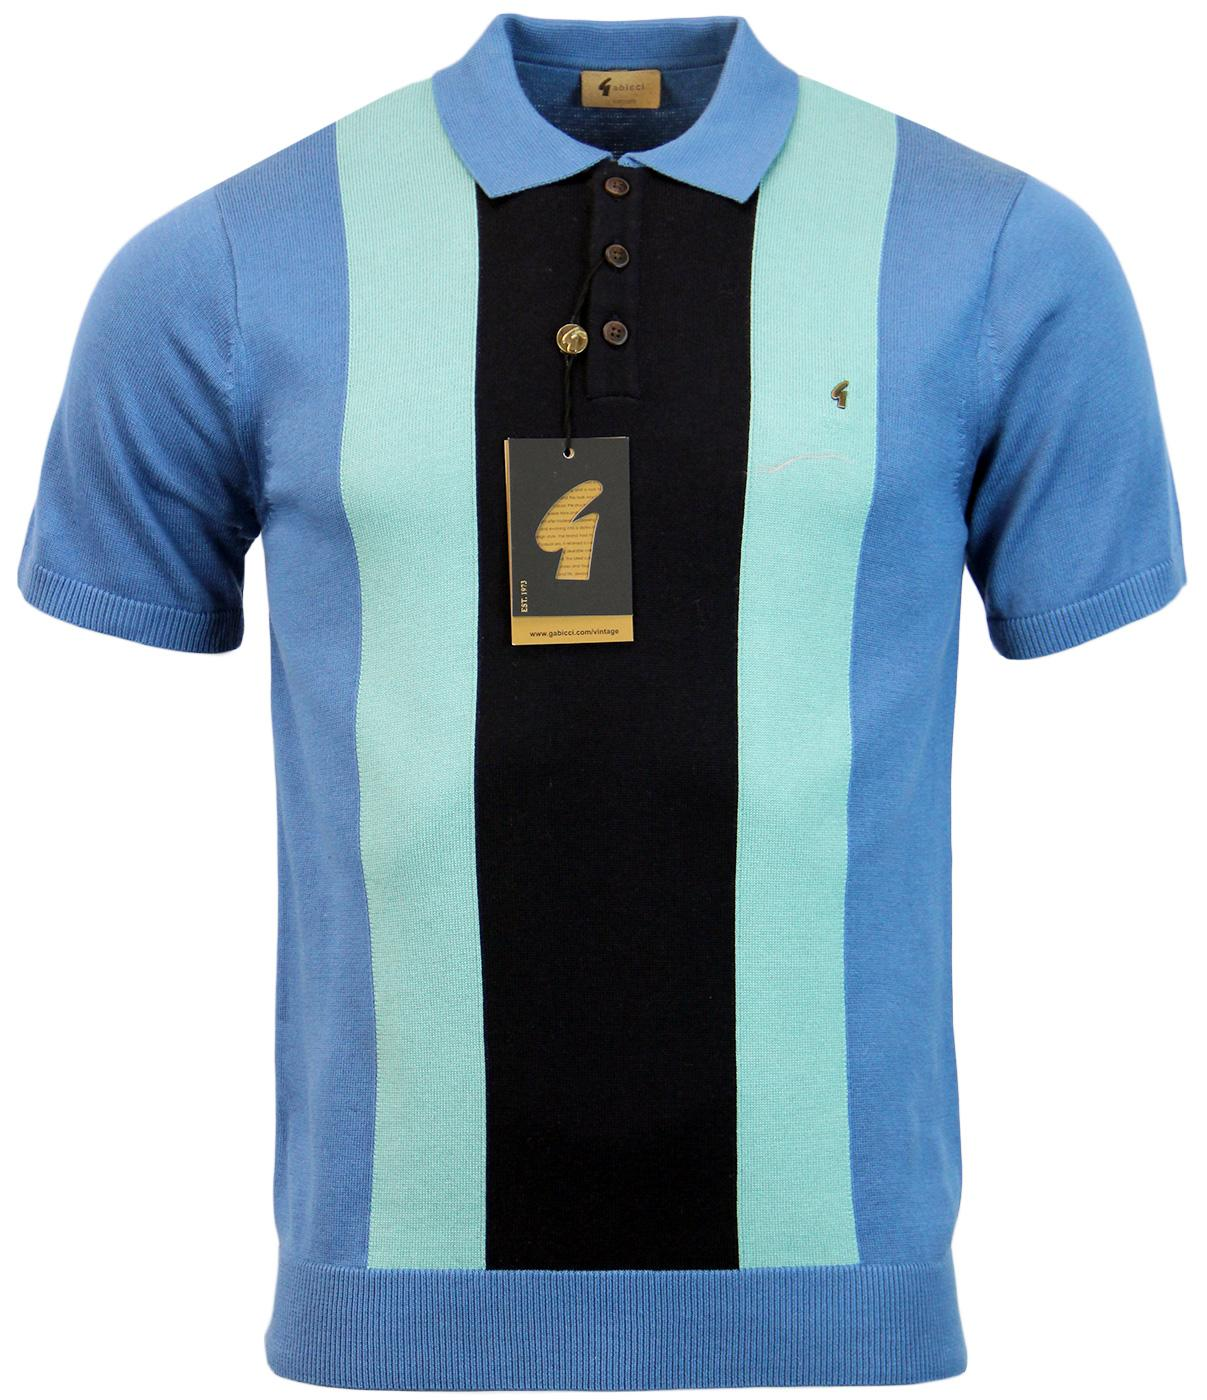 GABICCI VINTAGE Retro Mod Stripe Panel Knit Polo R